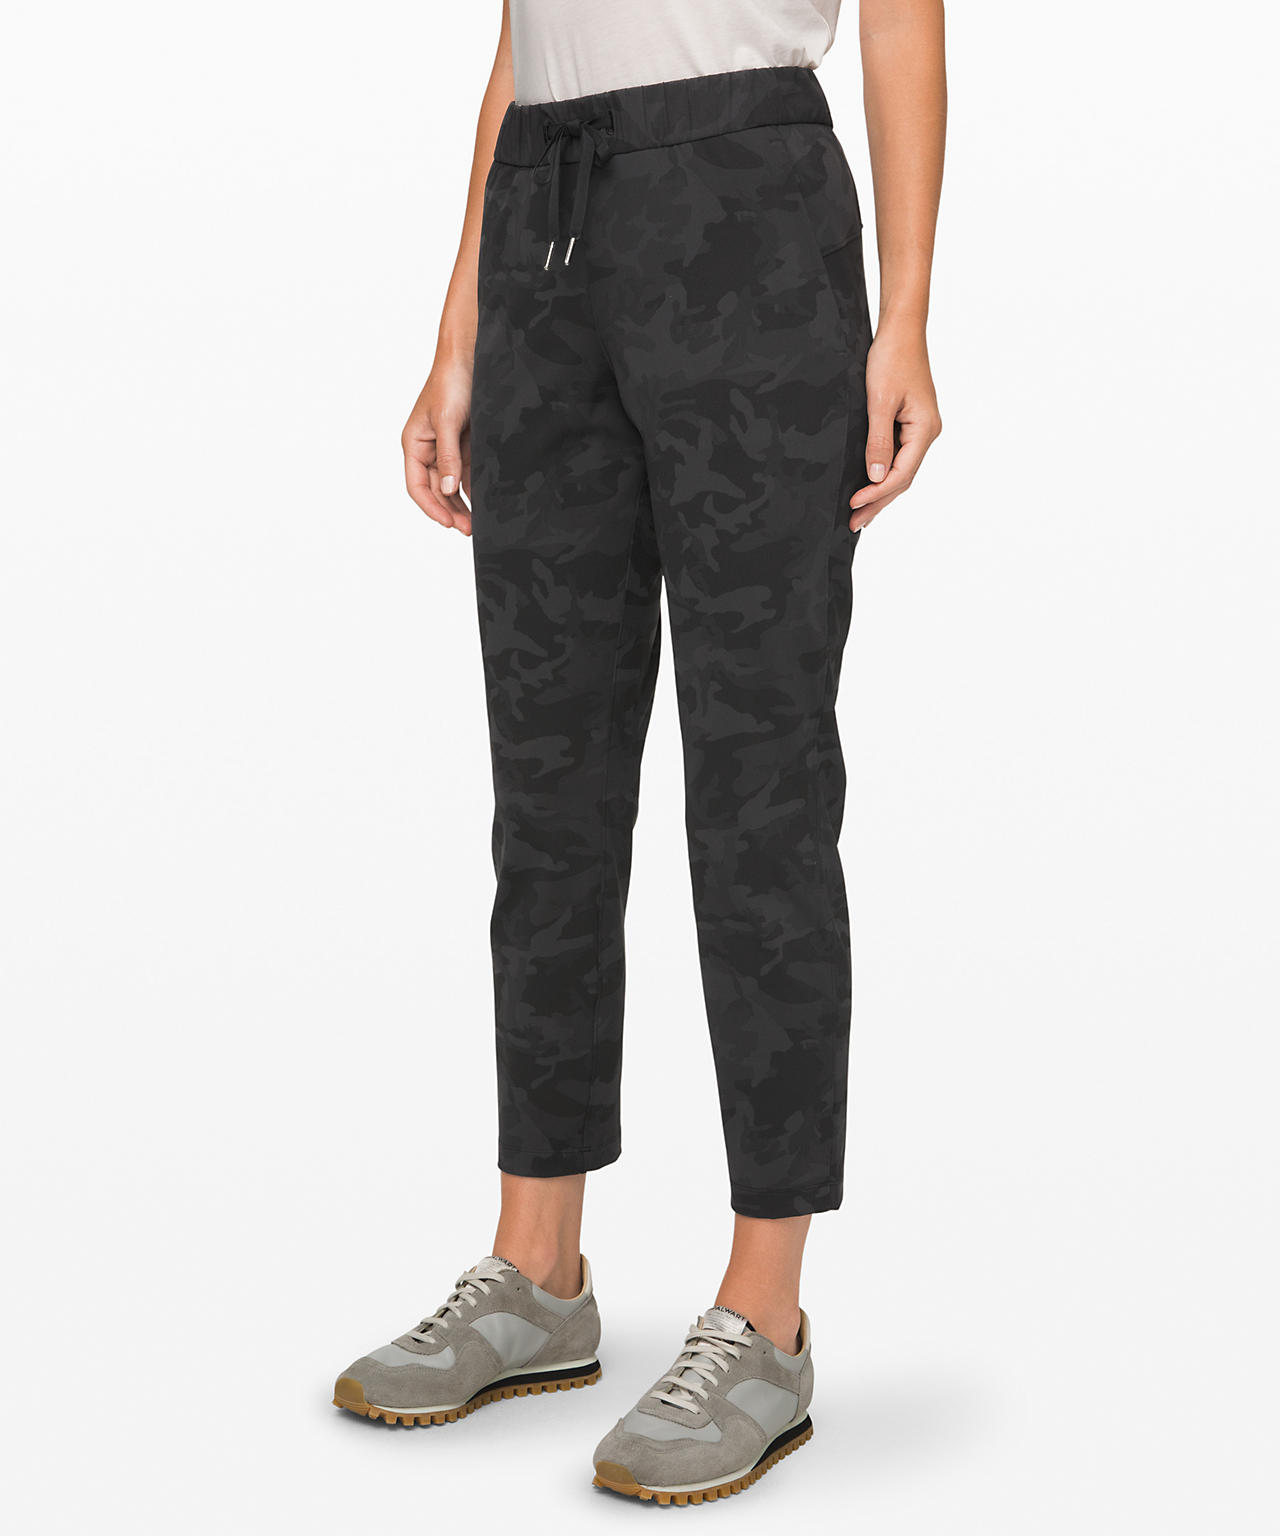 On The Fly Pant Incognito Camo